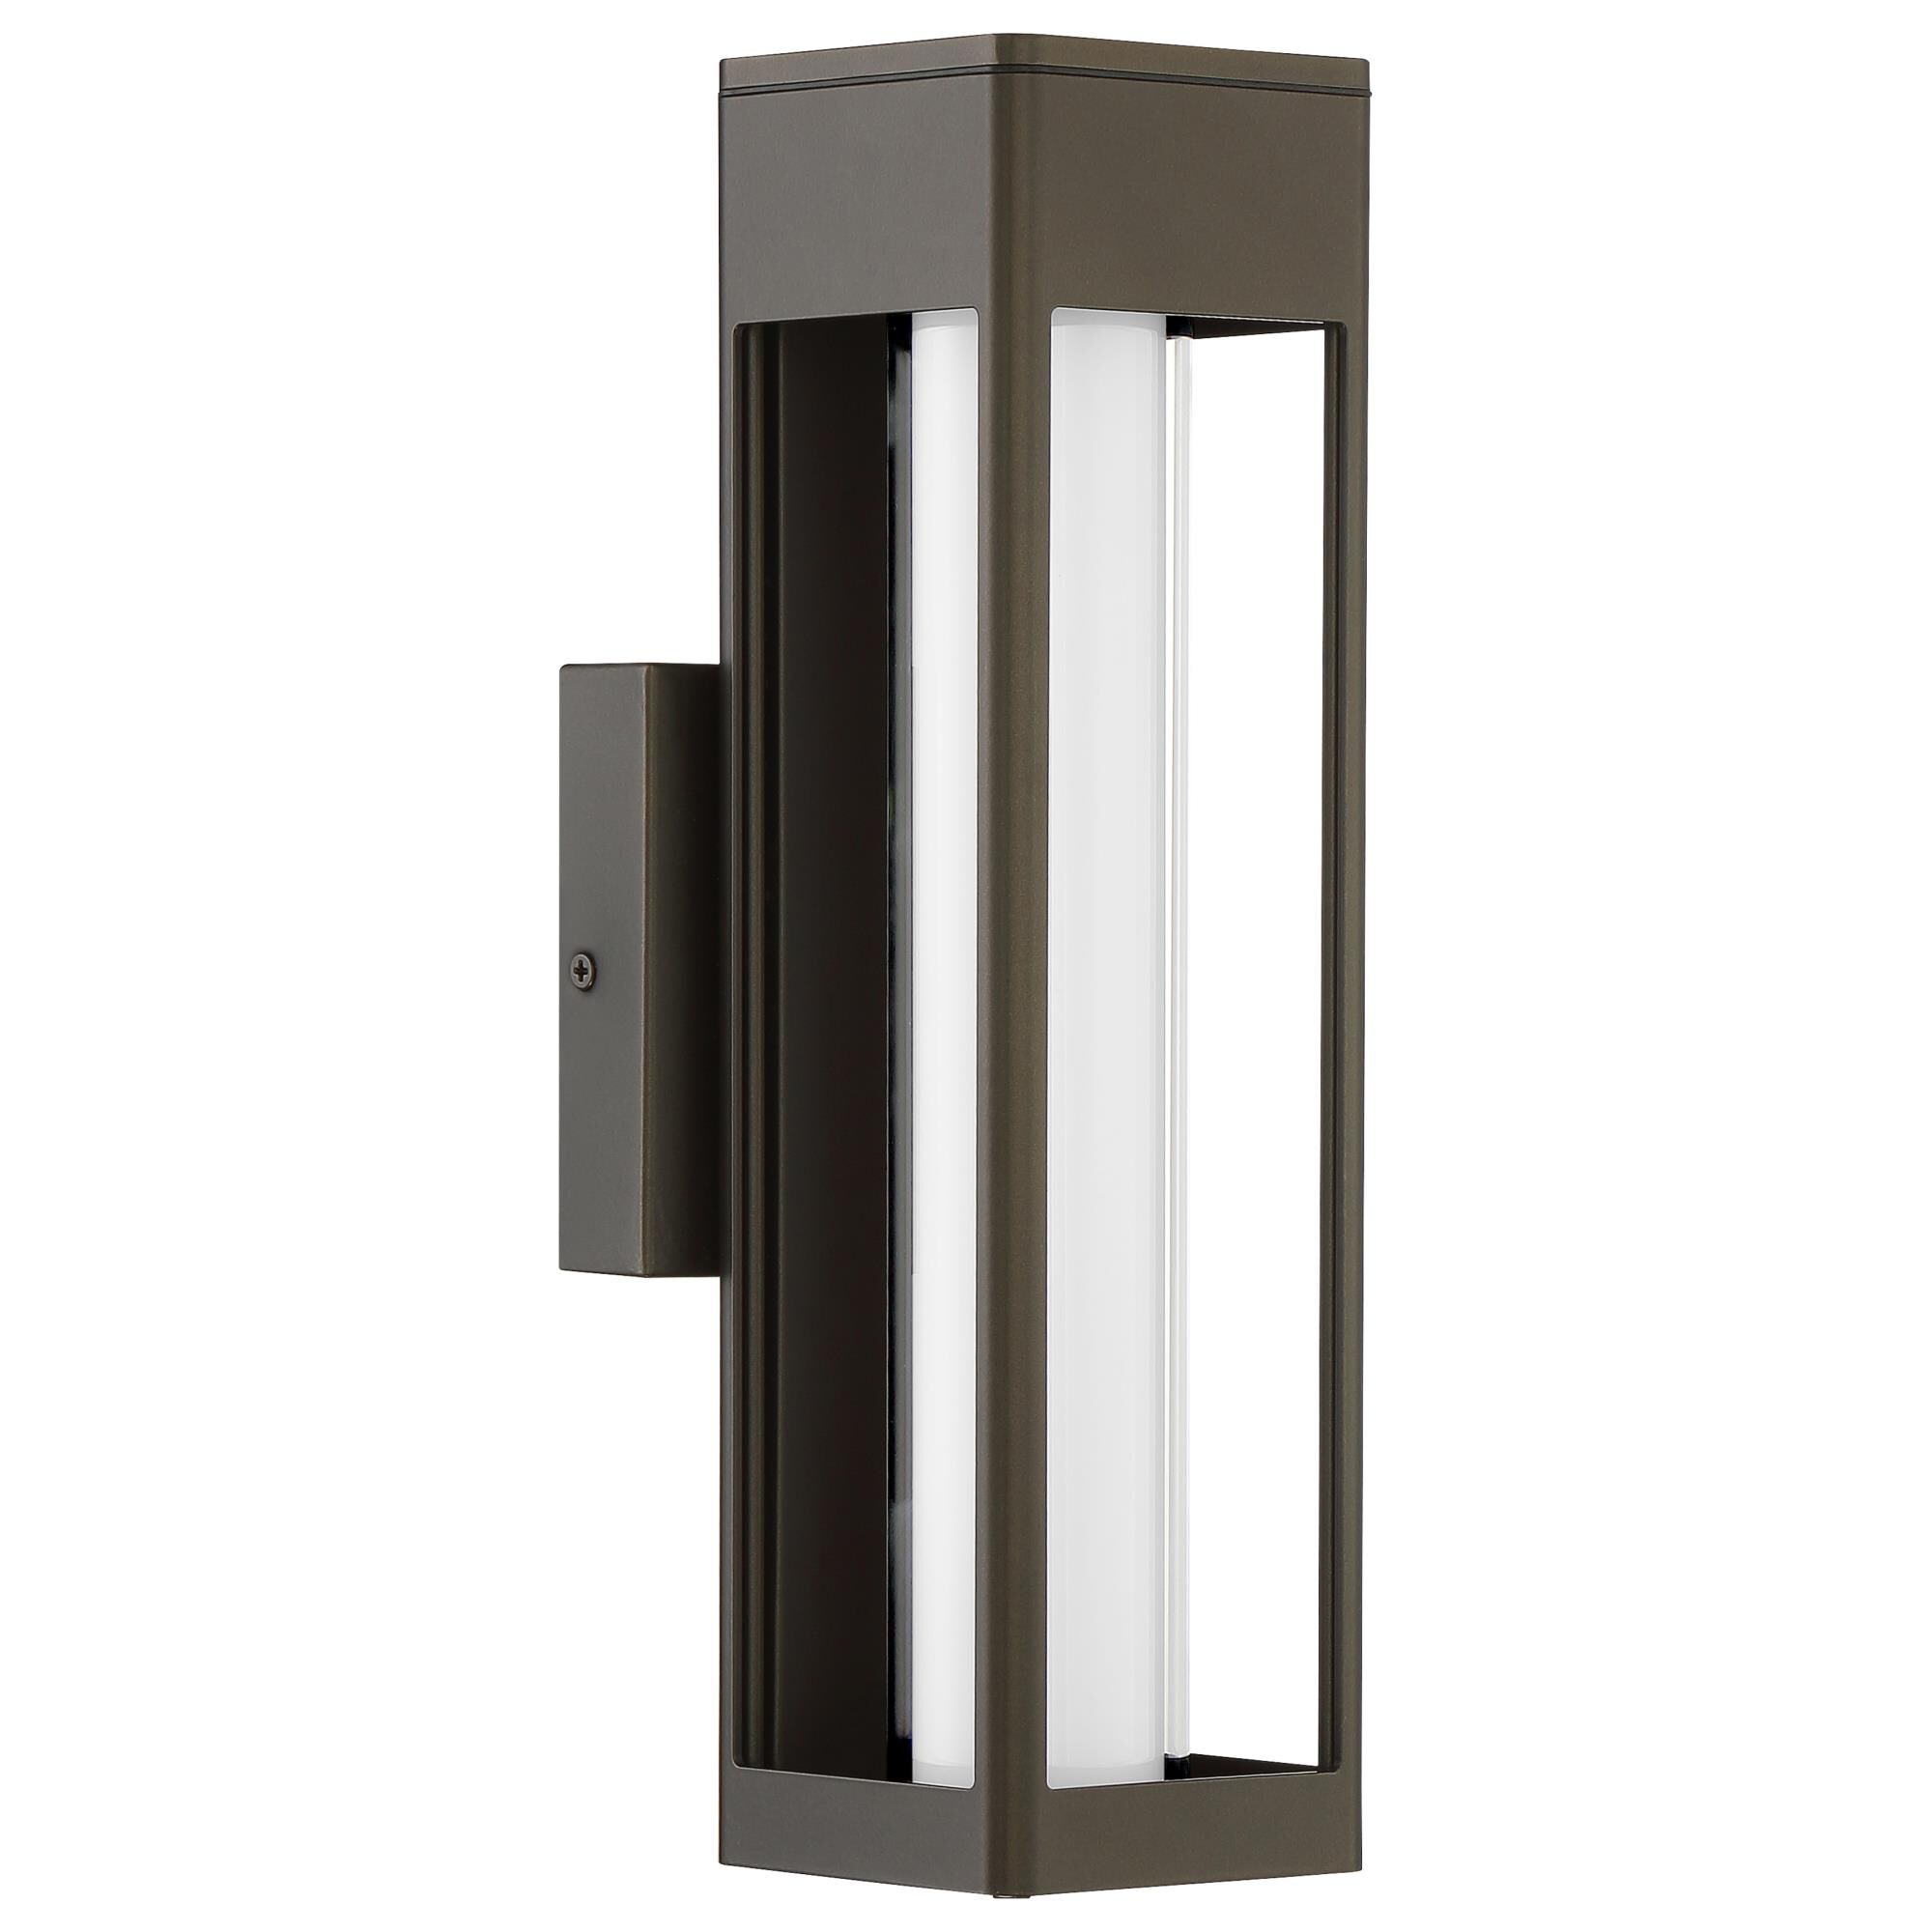 Access Lighting Soll 14 Inch LED Wall Sconce Soll 20126LEDDMG ORBOPL Modern Contemporary